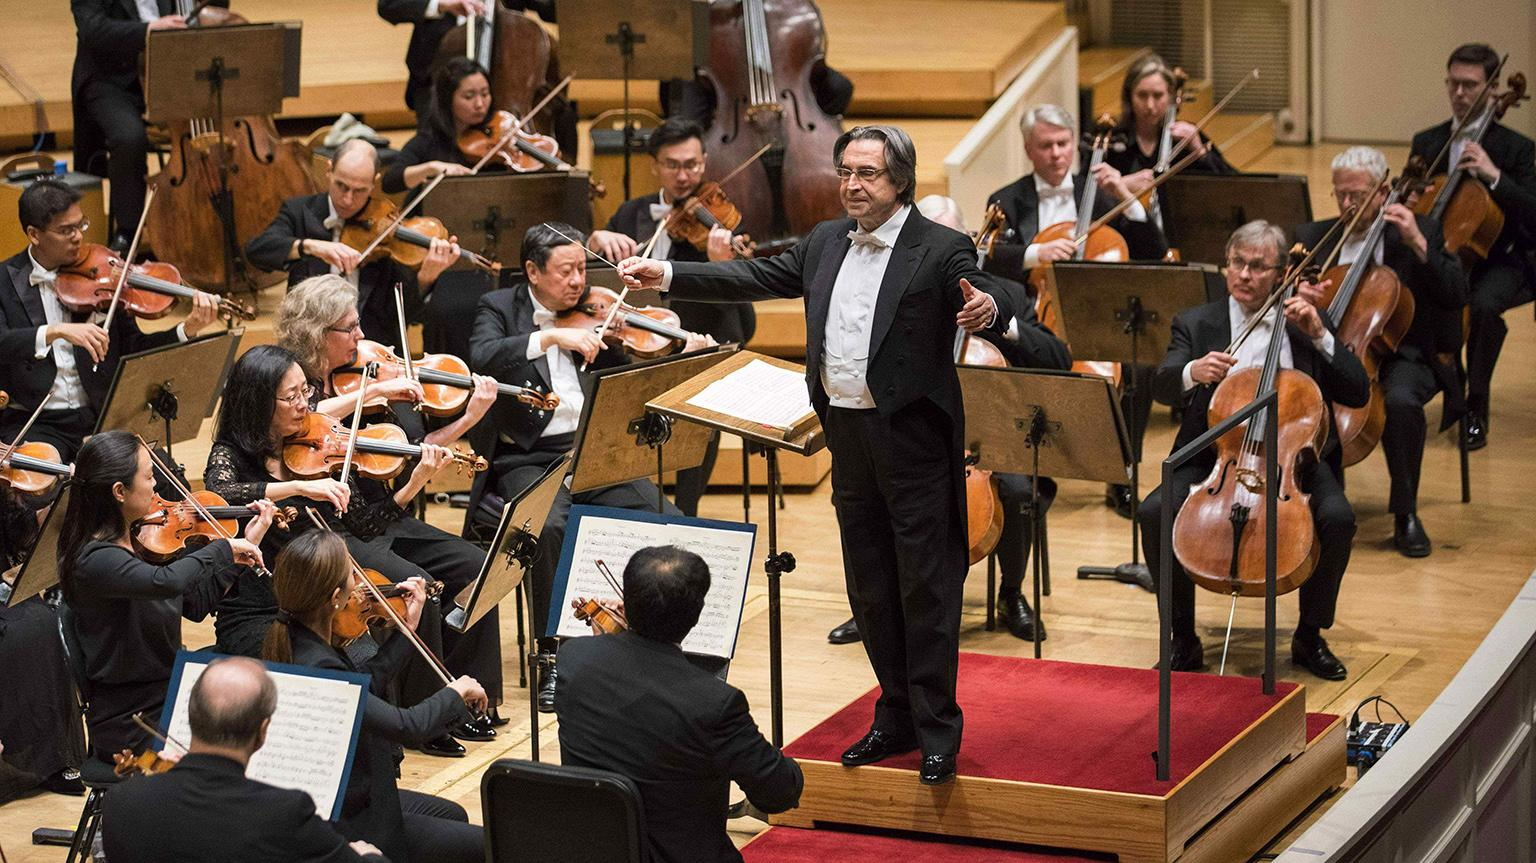 Zell Music Director Riccardo Muti conducts the Chicago Symphony Orchestra (Photo: Todd Rosenberg)